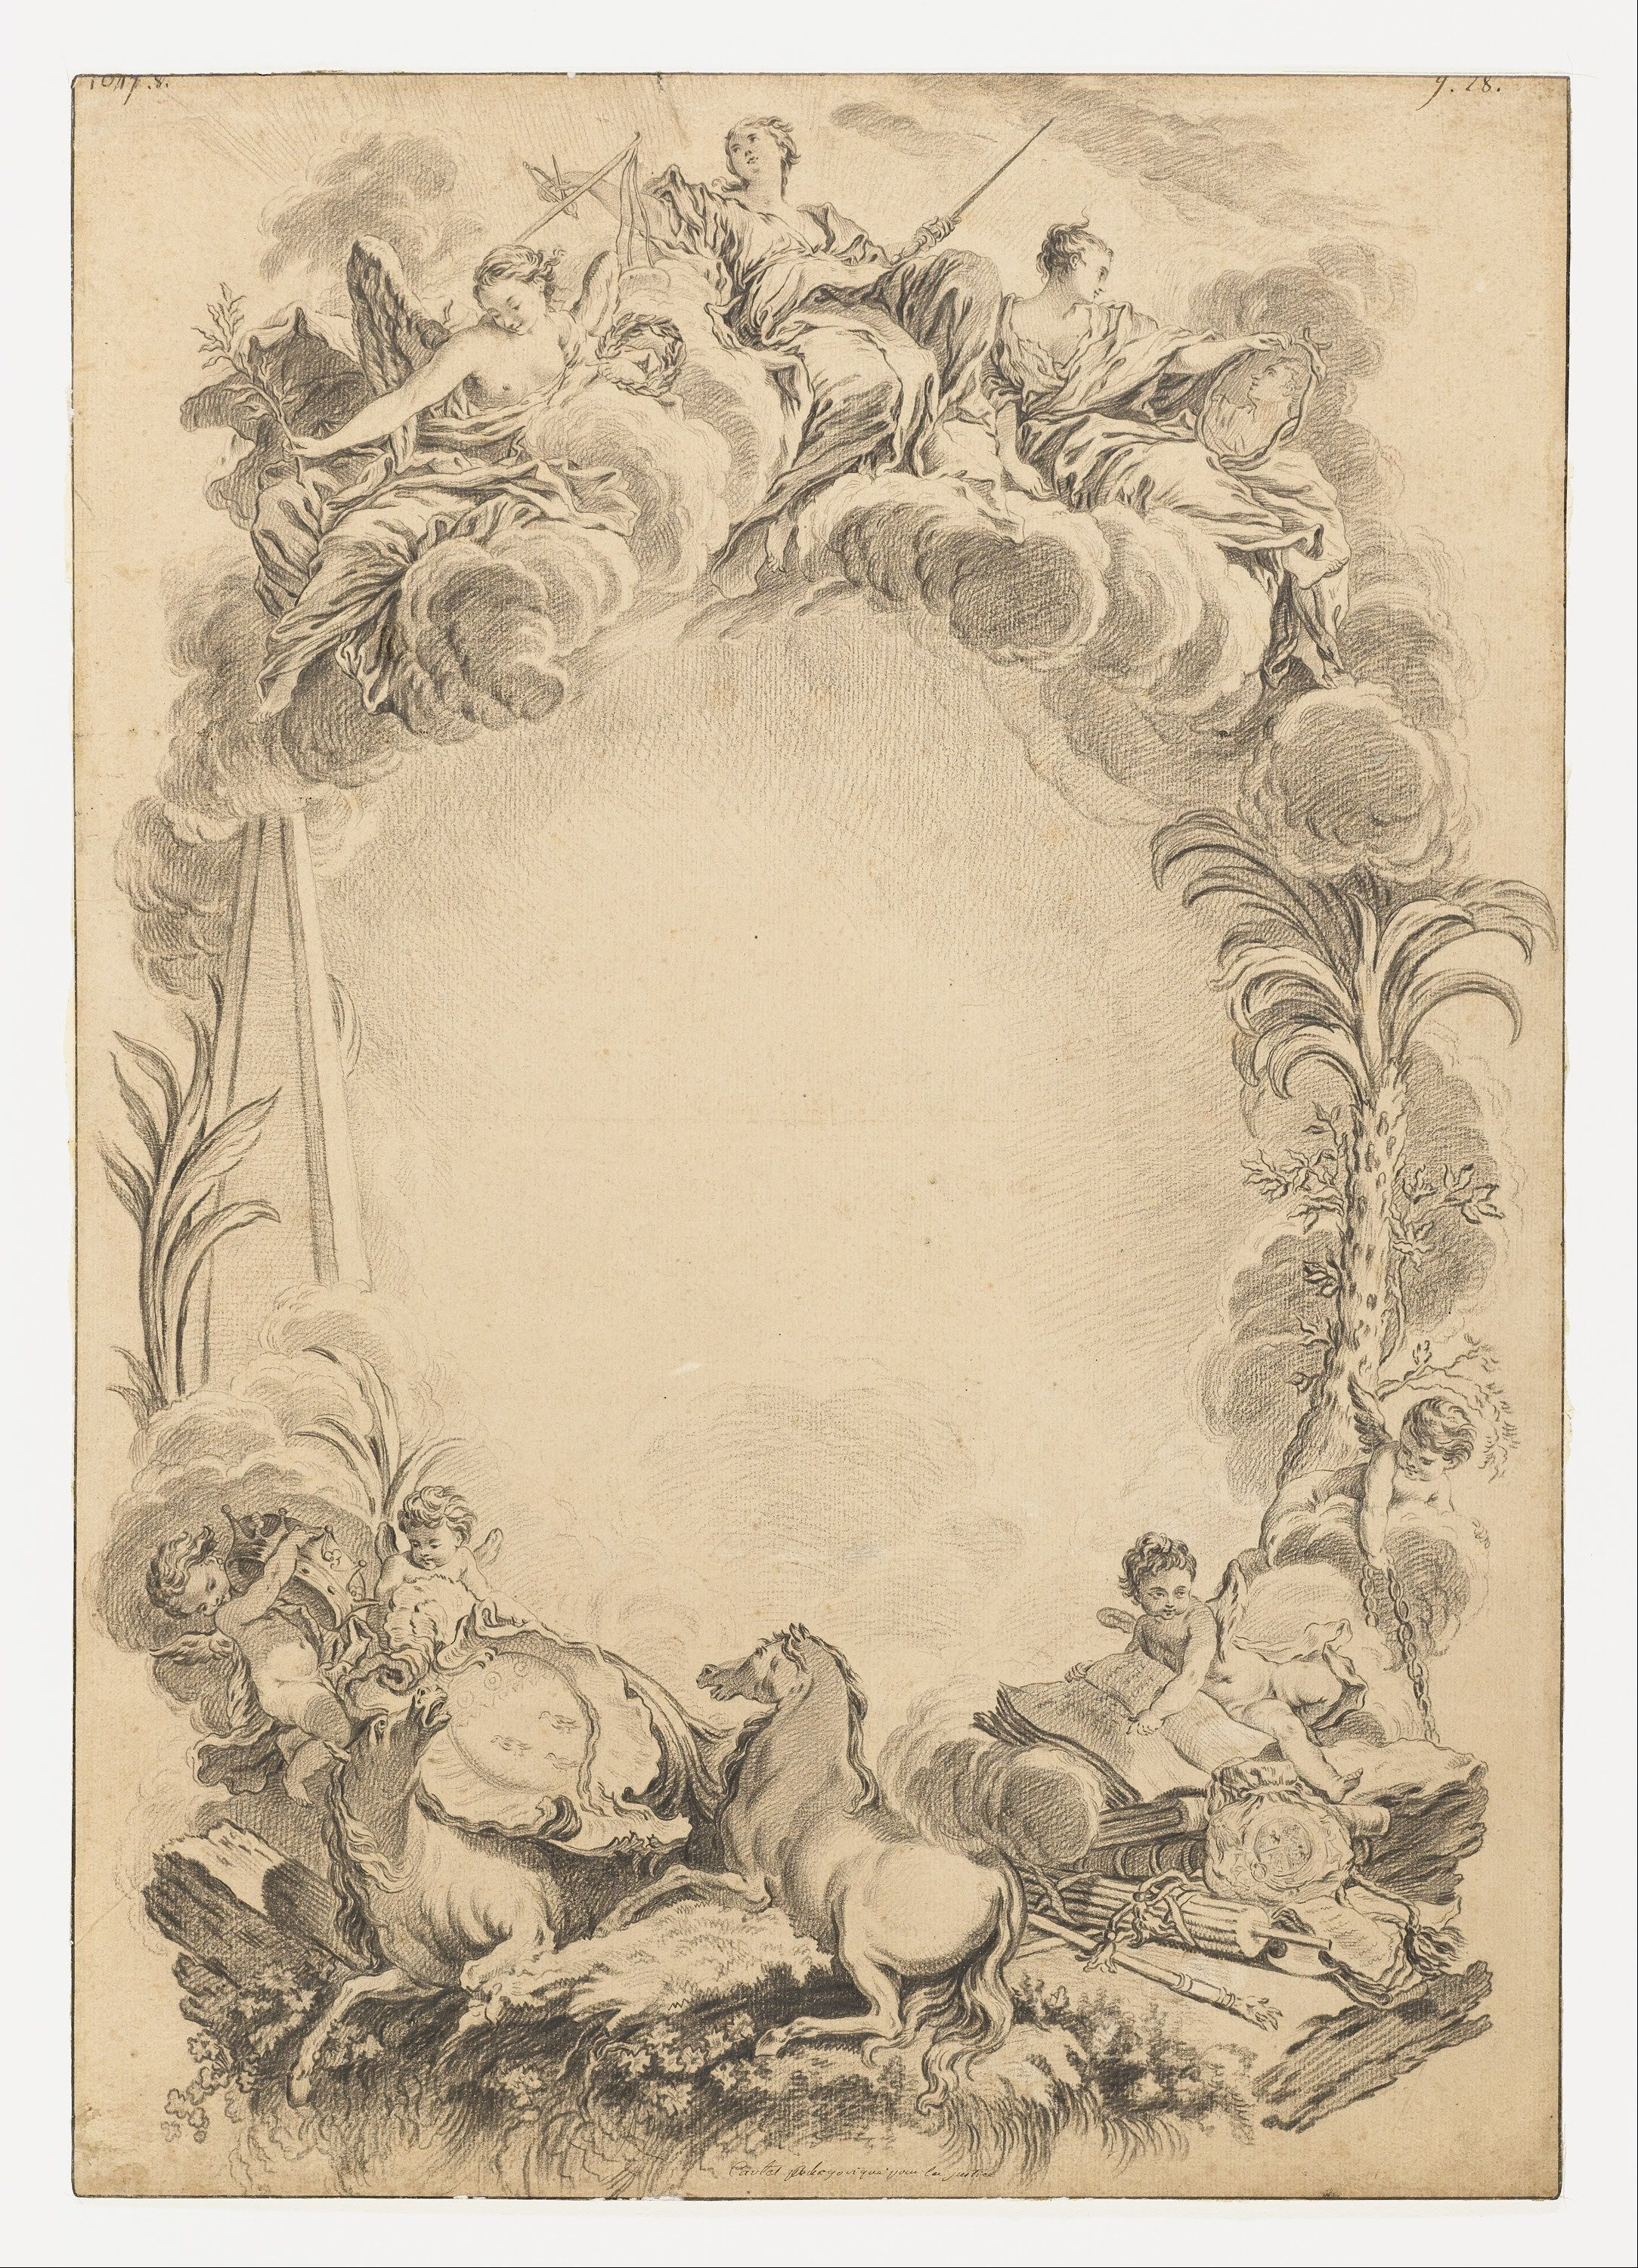 http://upload.wikimedia.org/wikipedia/commons/7/70/Fran%C3%A7ois_Boucher_-_Design_for_an_Escutcheon_in_Honor_of_William_Earl_Cowper_%28ca._1665-1723%29_-_Google_Art_Project.jpg?uselang=hy